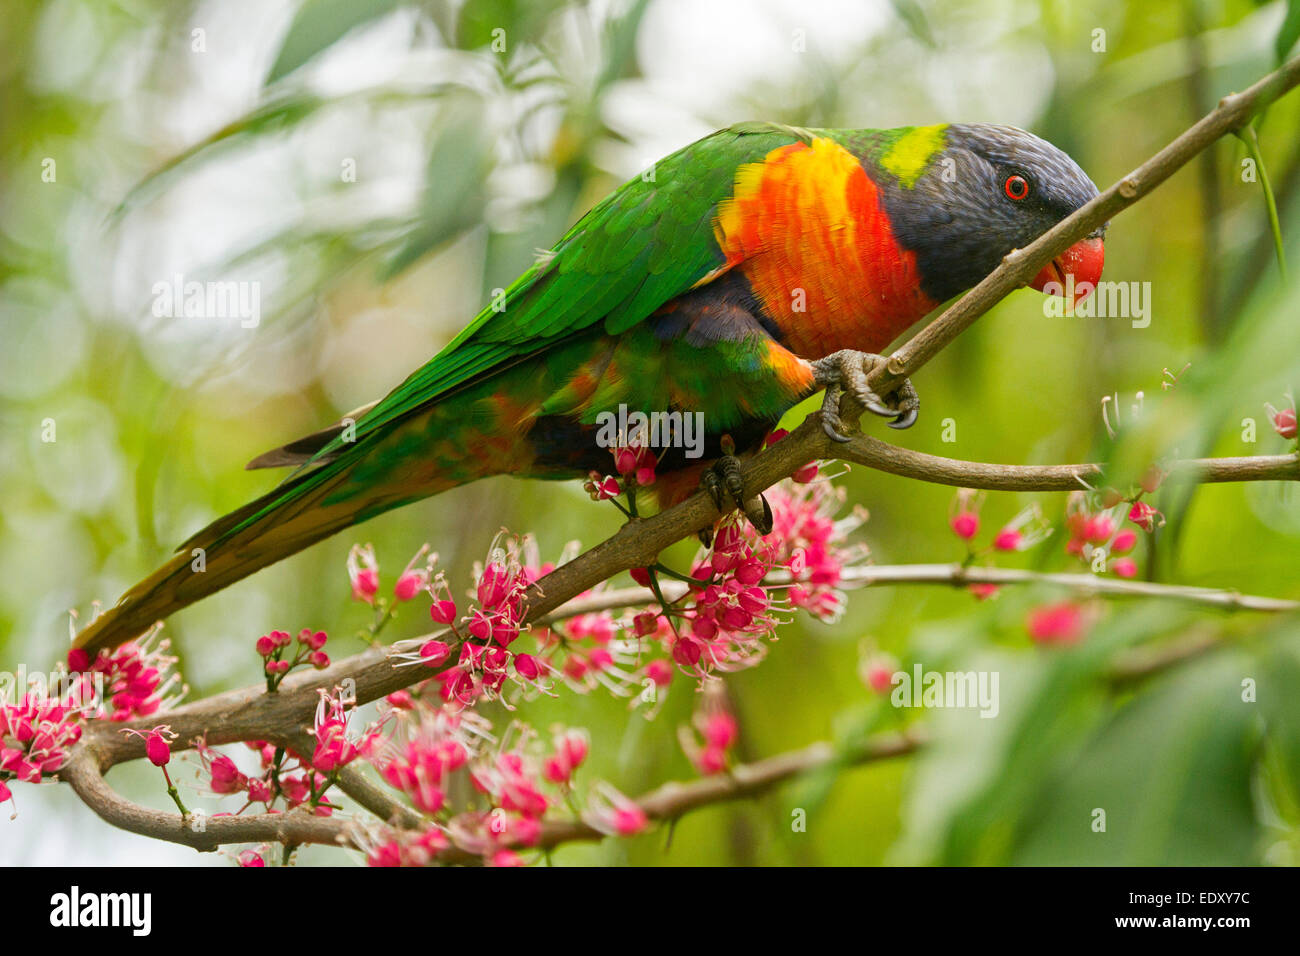 Brightly coloured rainbow lorikeet, Australian parrot in the wild among clusters of pink flowers of native corkwood - Stock Image